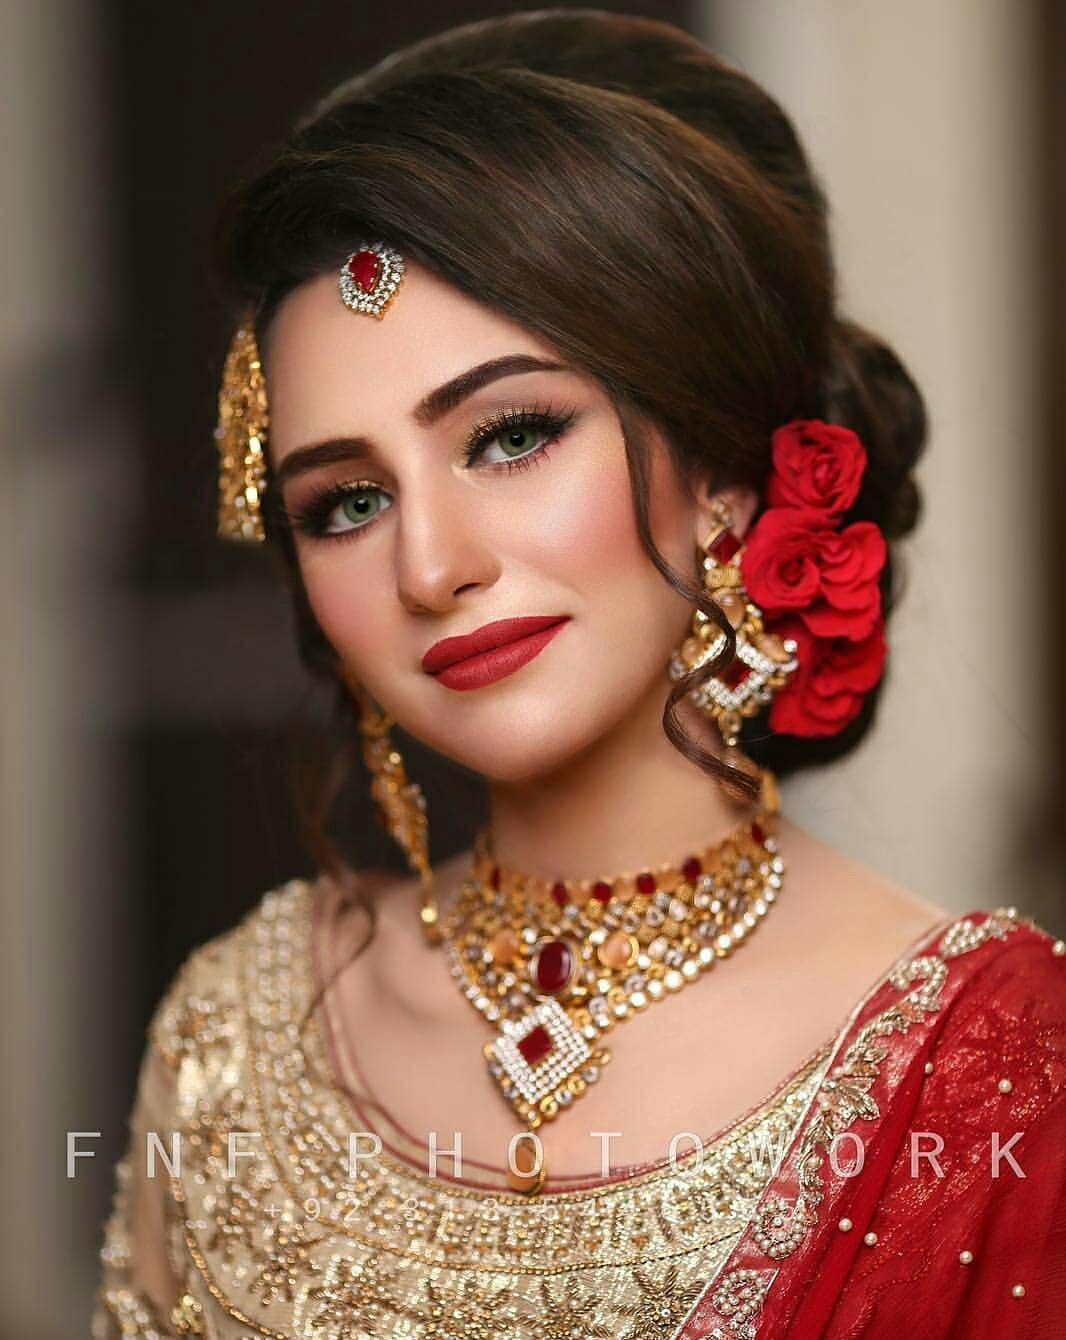 Pin By Cutesasha On Beautiful Brides Bridal Hair And Makeup Pakistani Bridal Hairstyles Indian Bridal Hairstyles